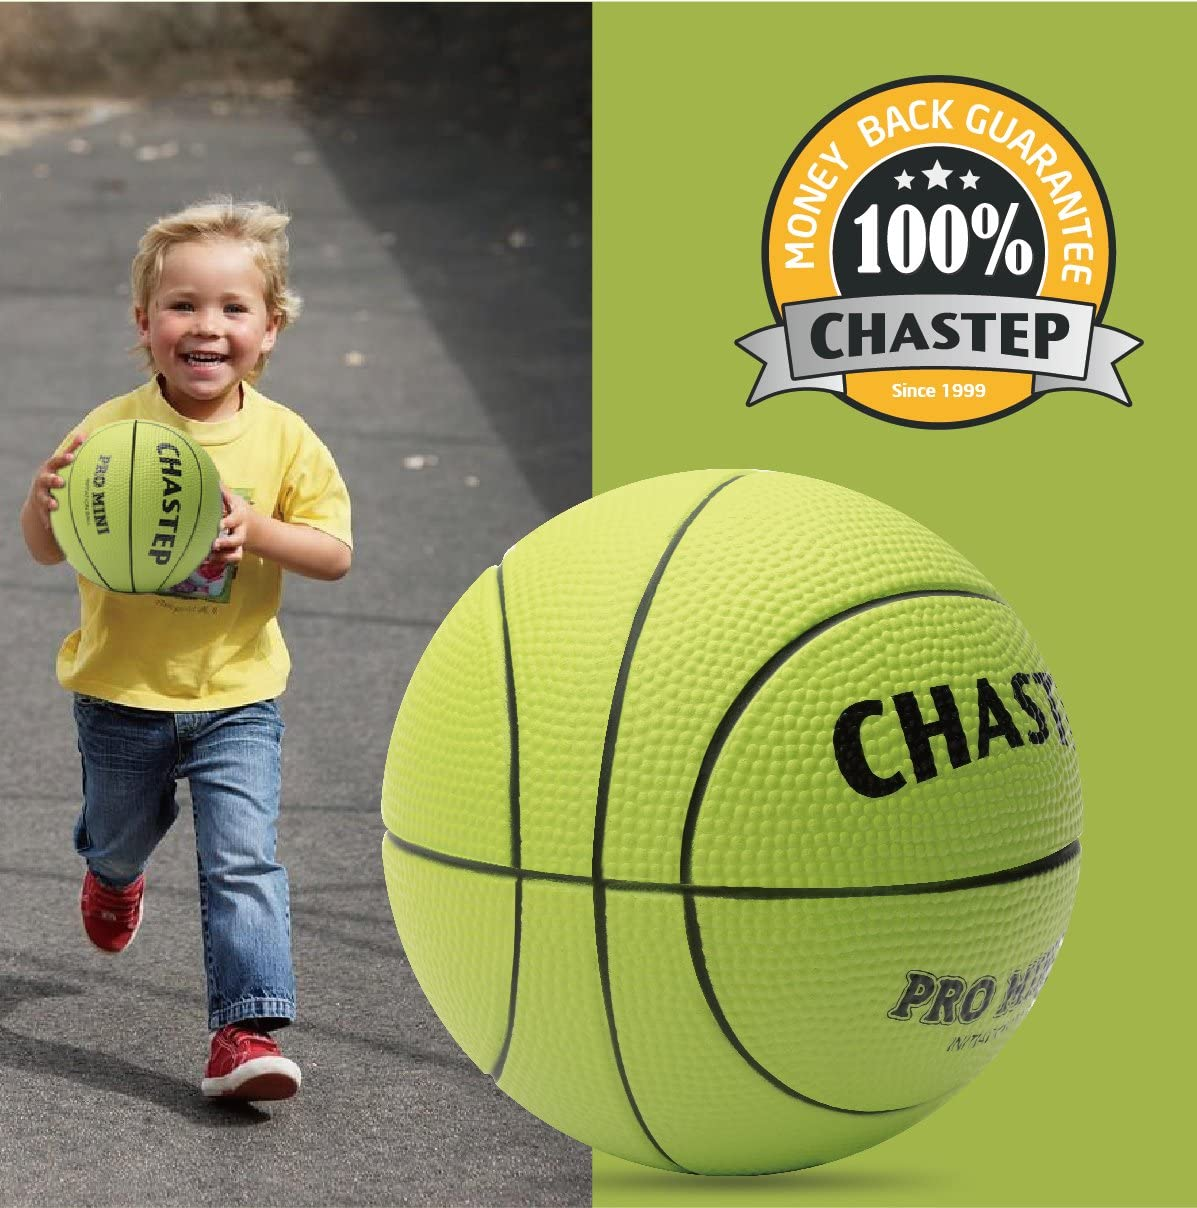 Vigoureux Chastep children Mini Basketball 6 inch Foam Ball Soft and Bouncy Indoor//Outdoor Toys and Games Non-Toxic Safe to Play Gift for kids